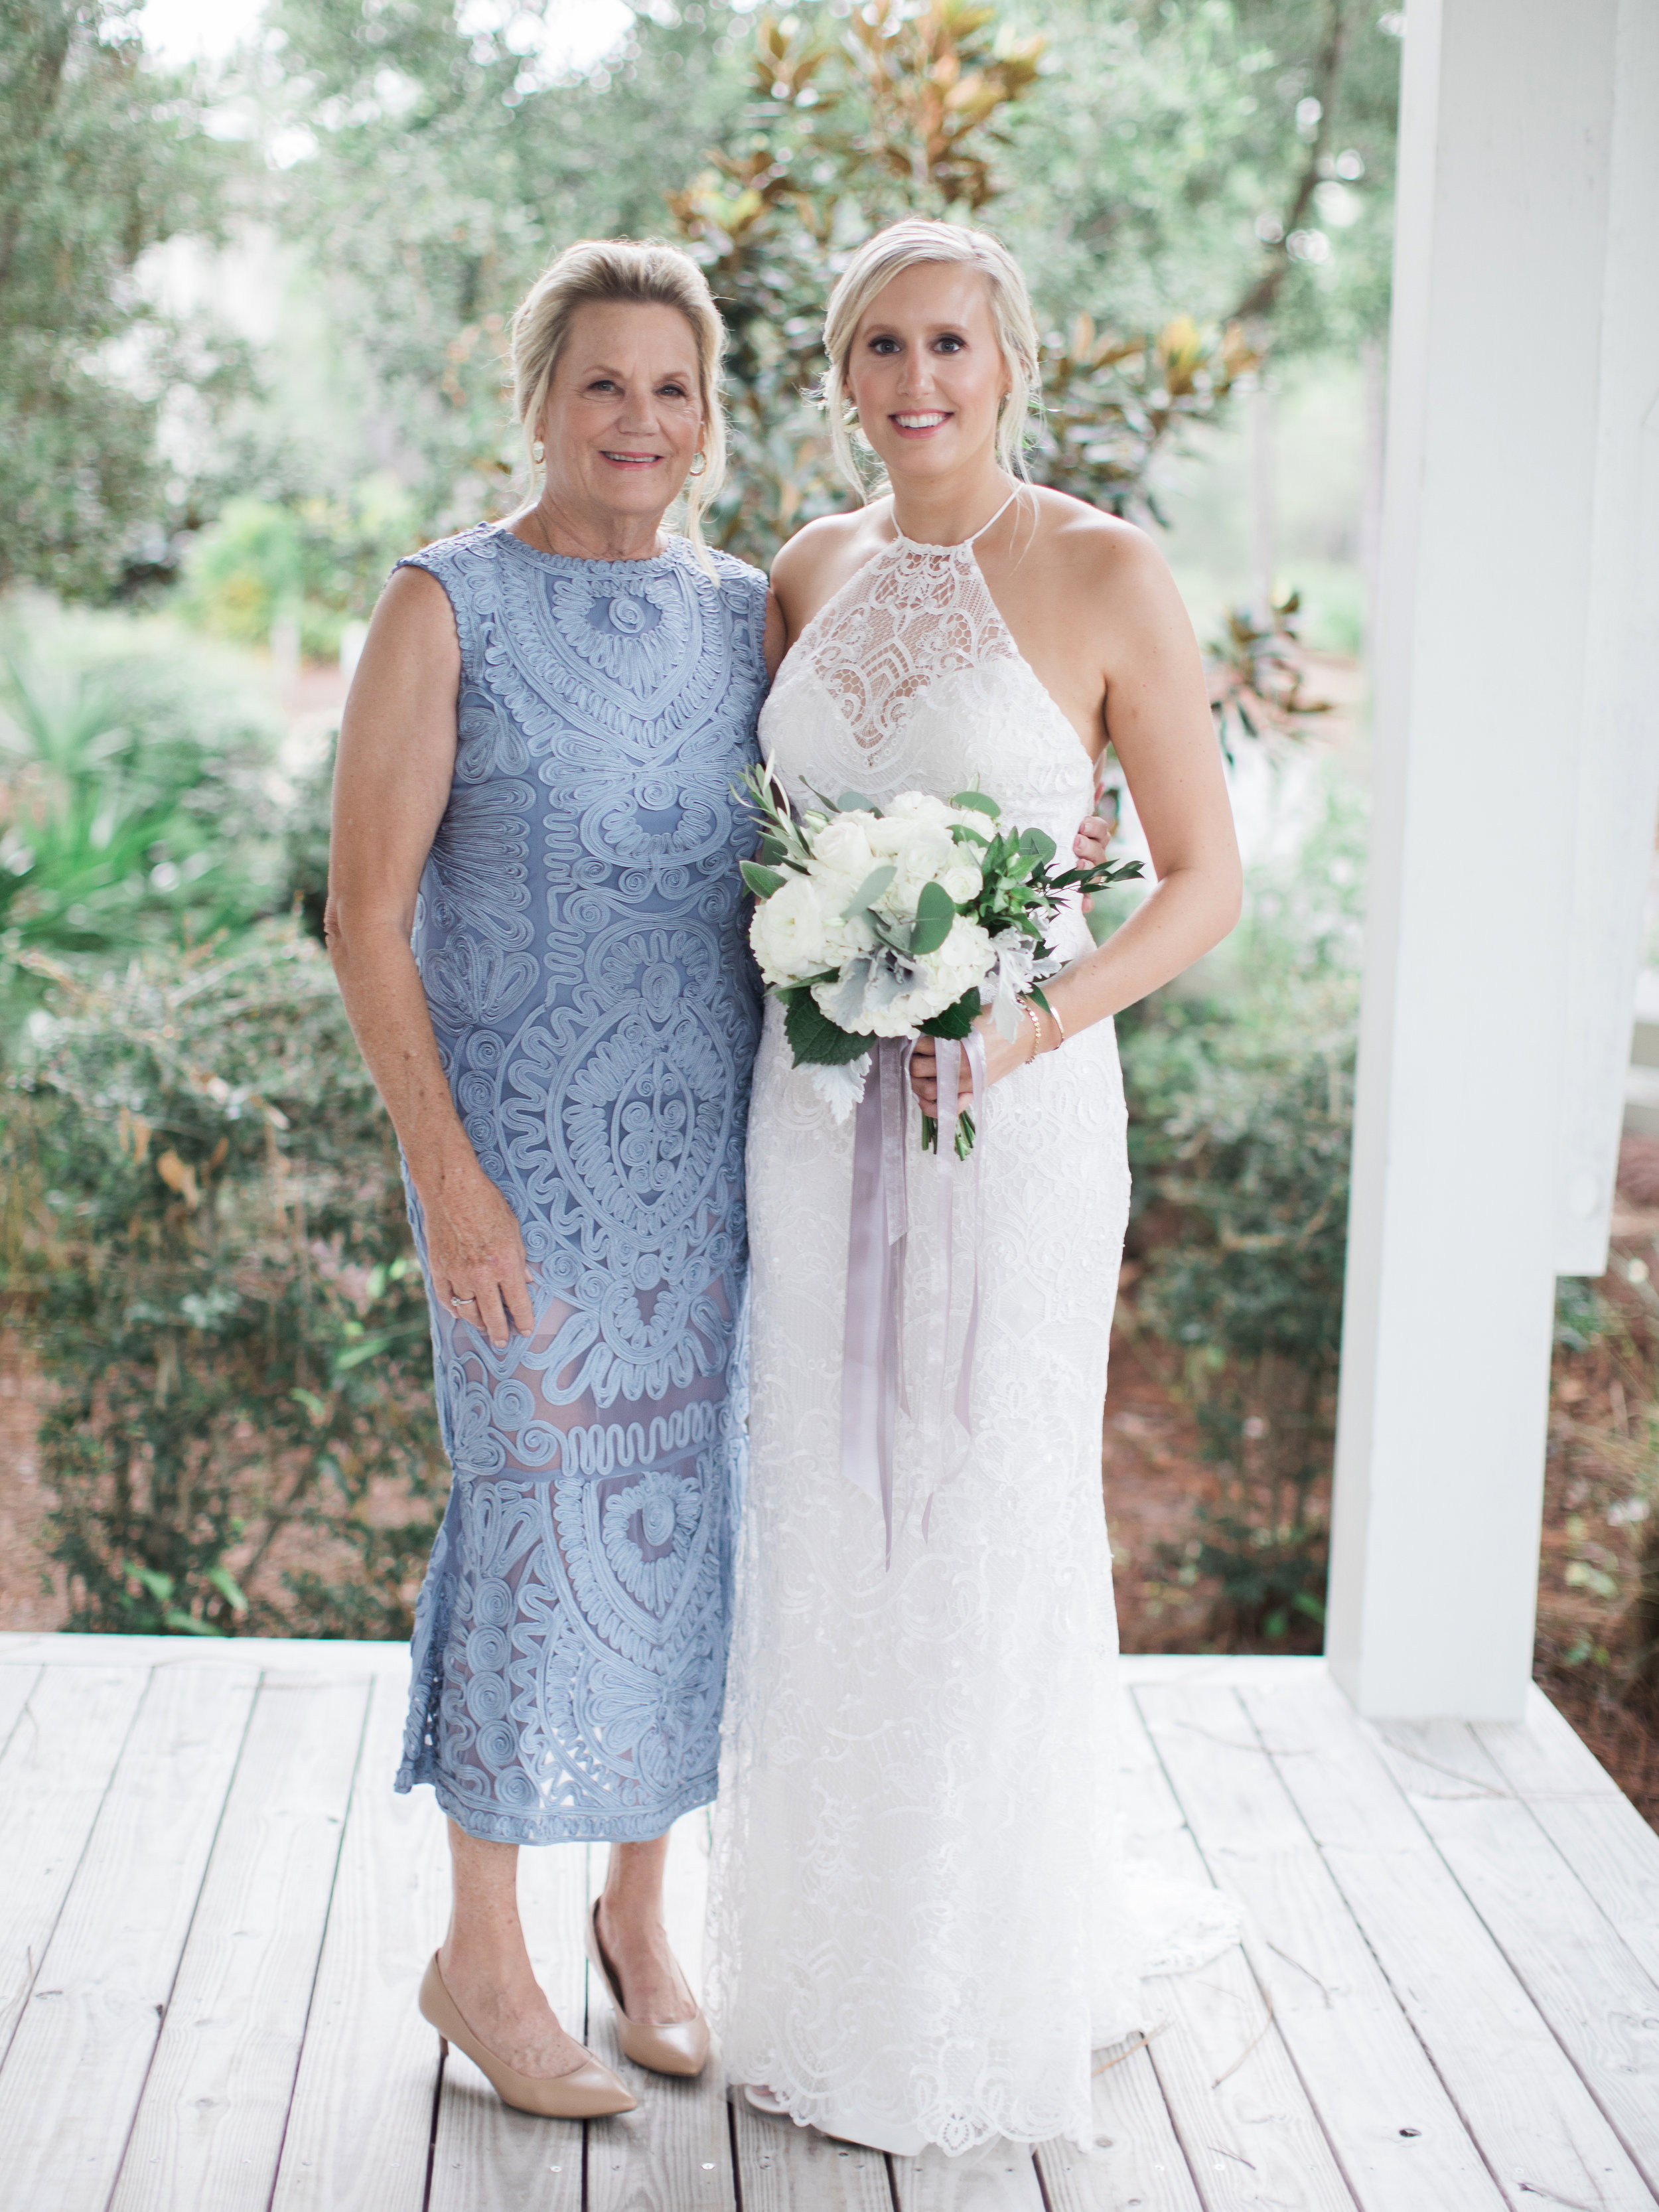 Stunning Mother of the Bride